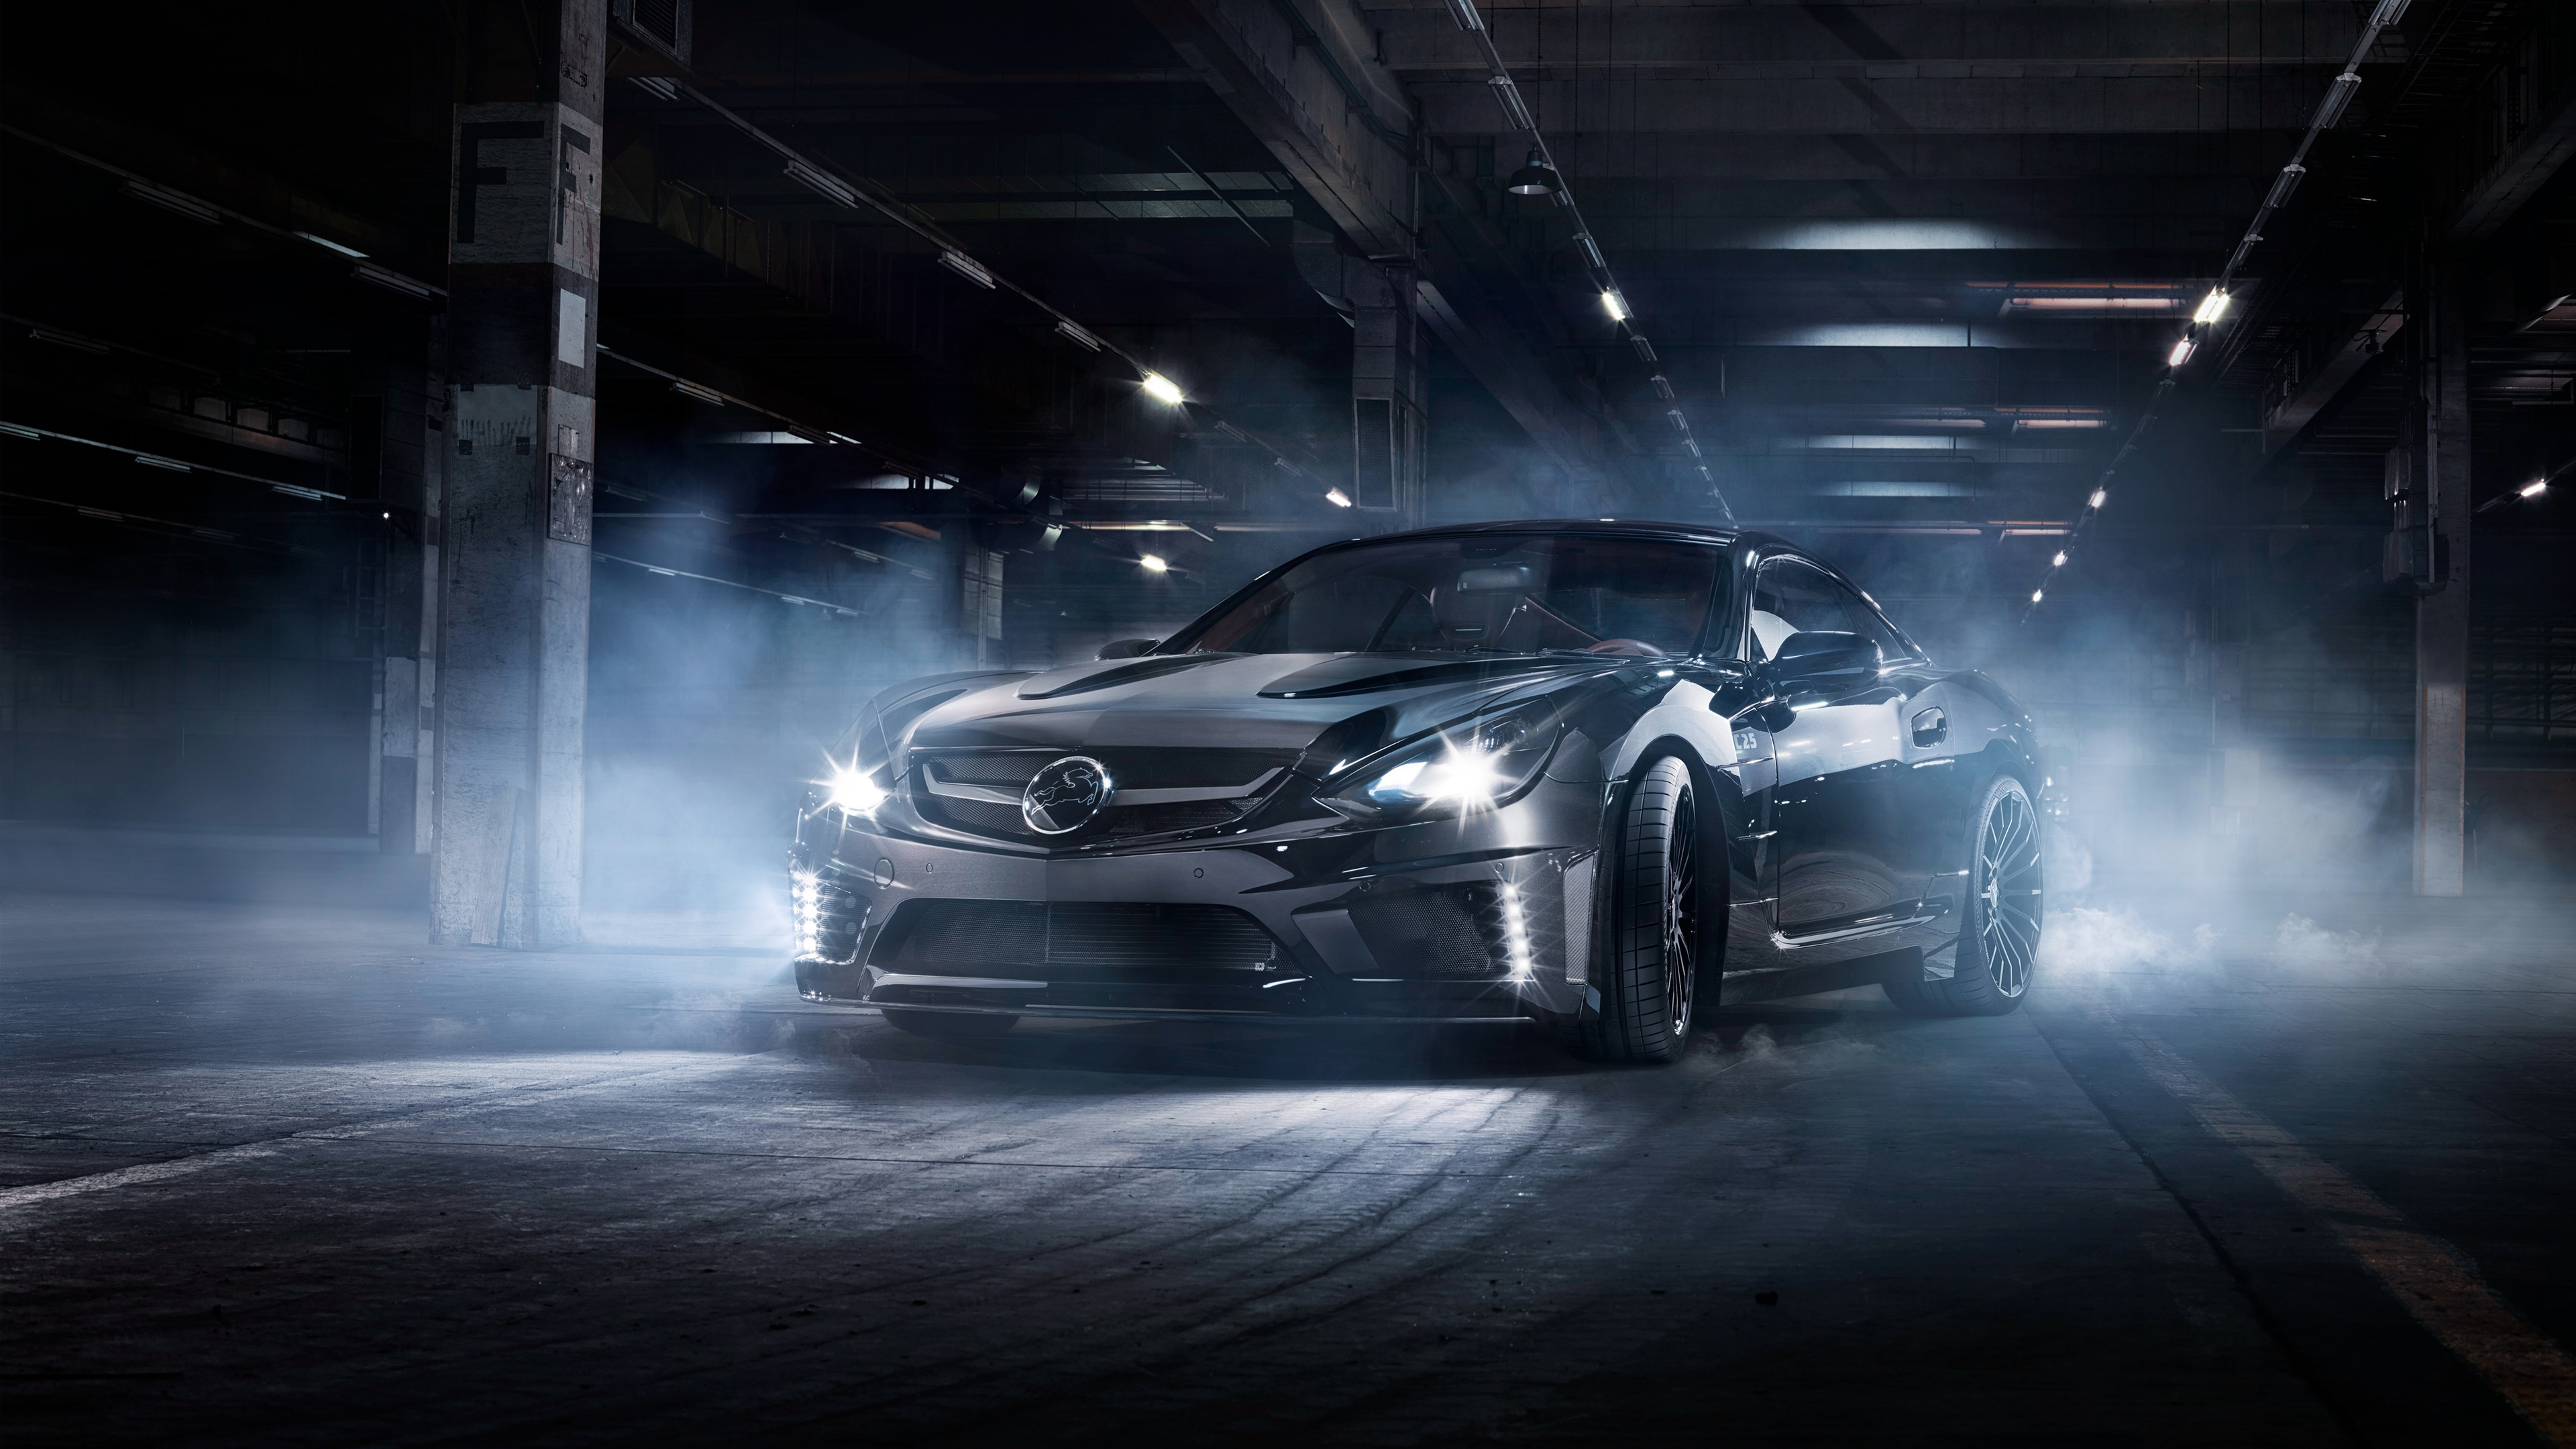 2015 carlsson mercedes benz c25 super gt wallpapers in jpg for Mercedes benz of minneapolis